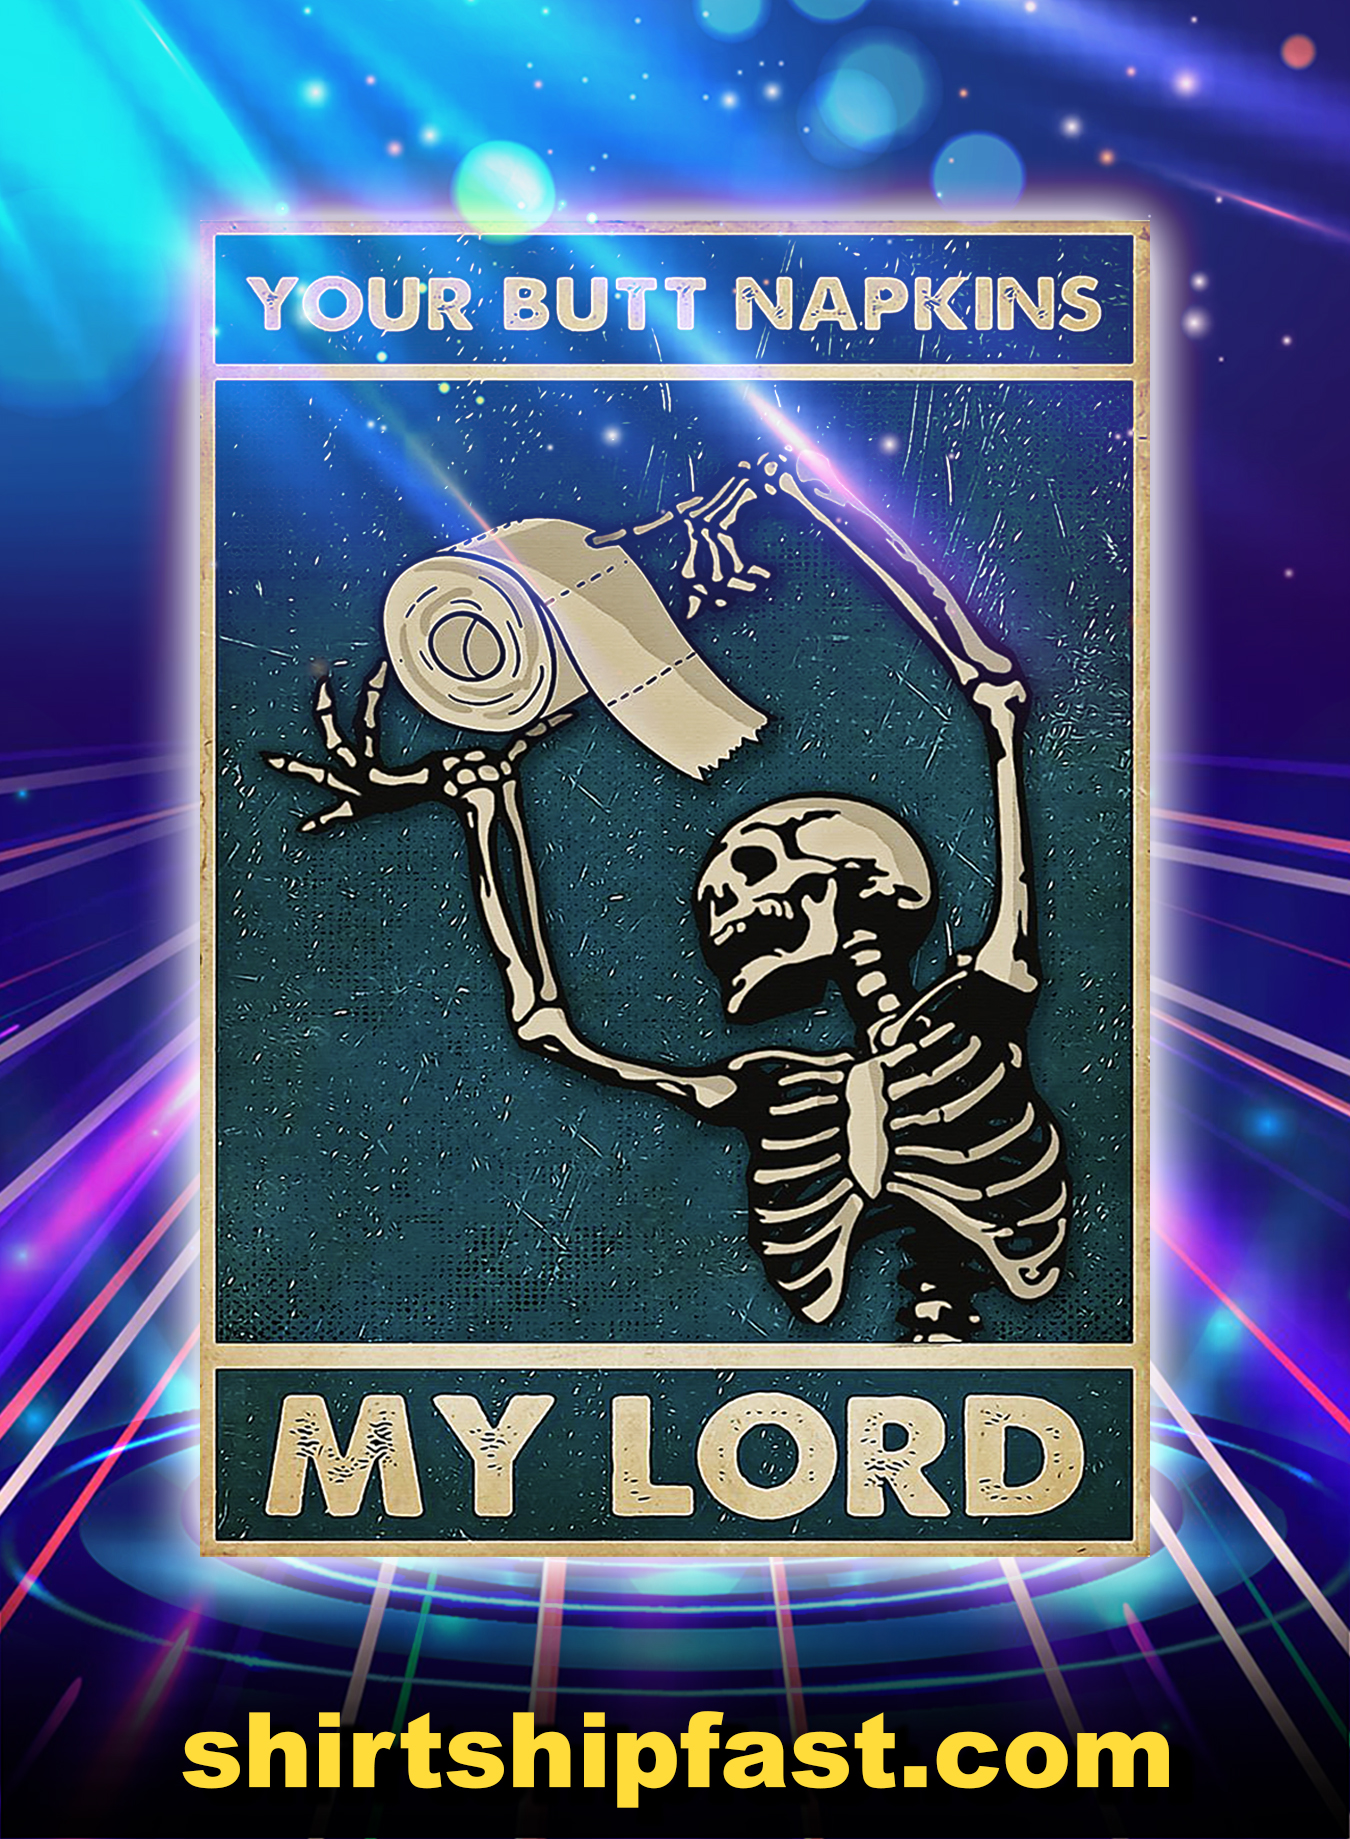 Bathroom Skull Your Butt Napkins My Lord Poster - A3